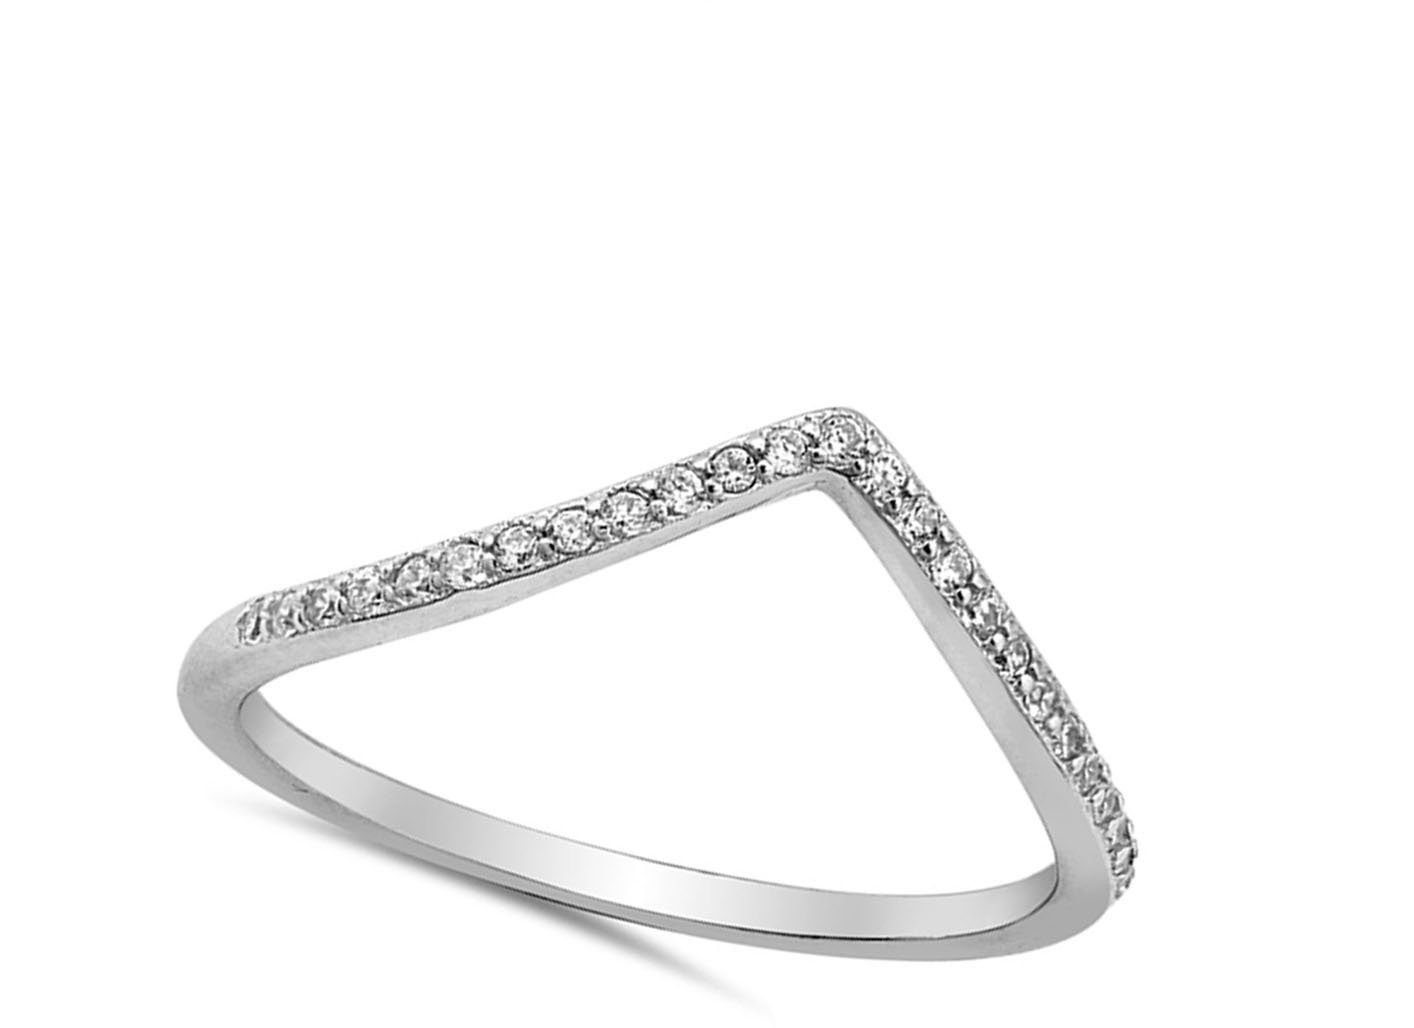 Chevron Pointed Tiara Clear CZ Thumb Ring .925 Sterling Silver Band Size 6 by Sac Silver (Image #1)